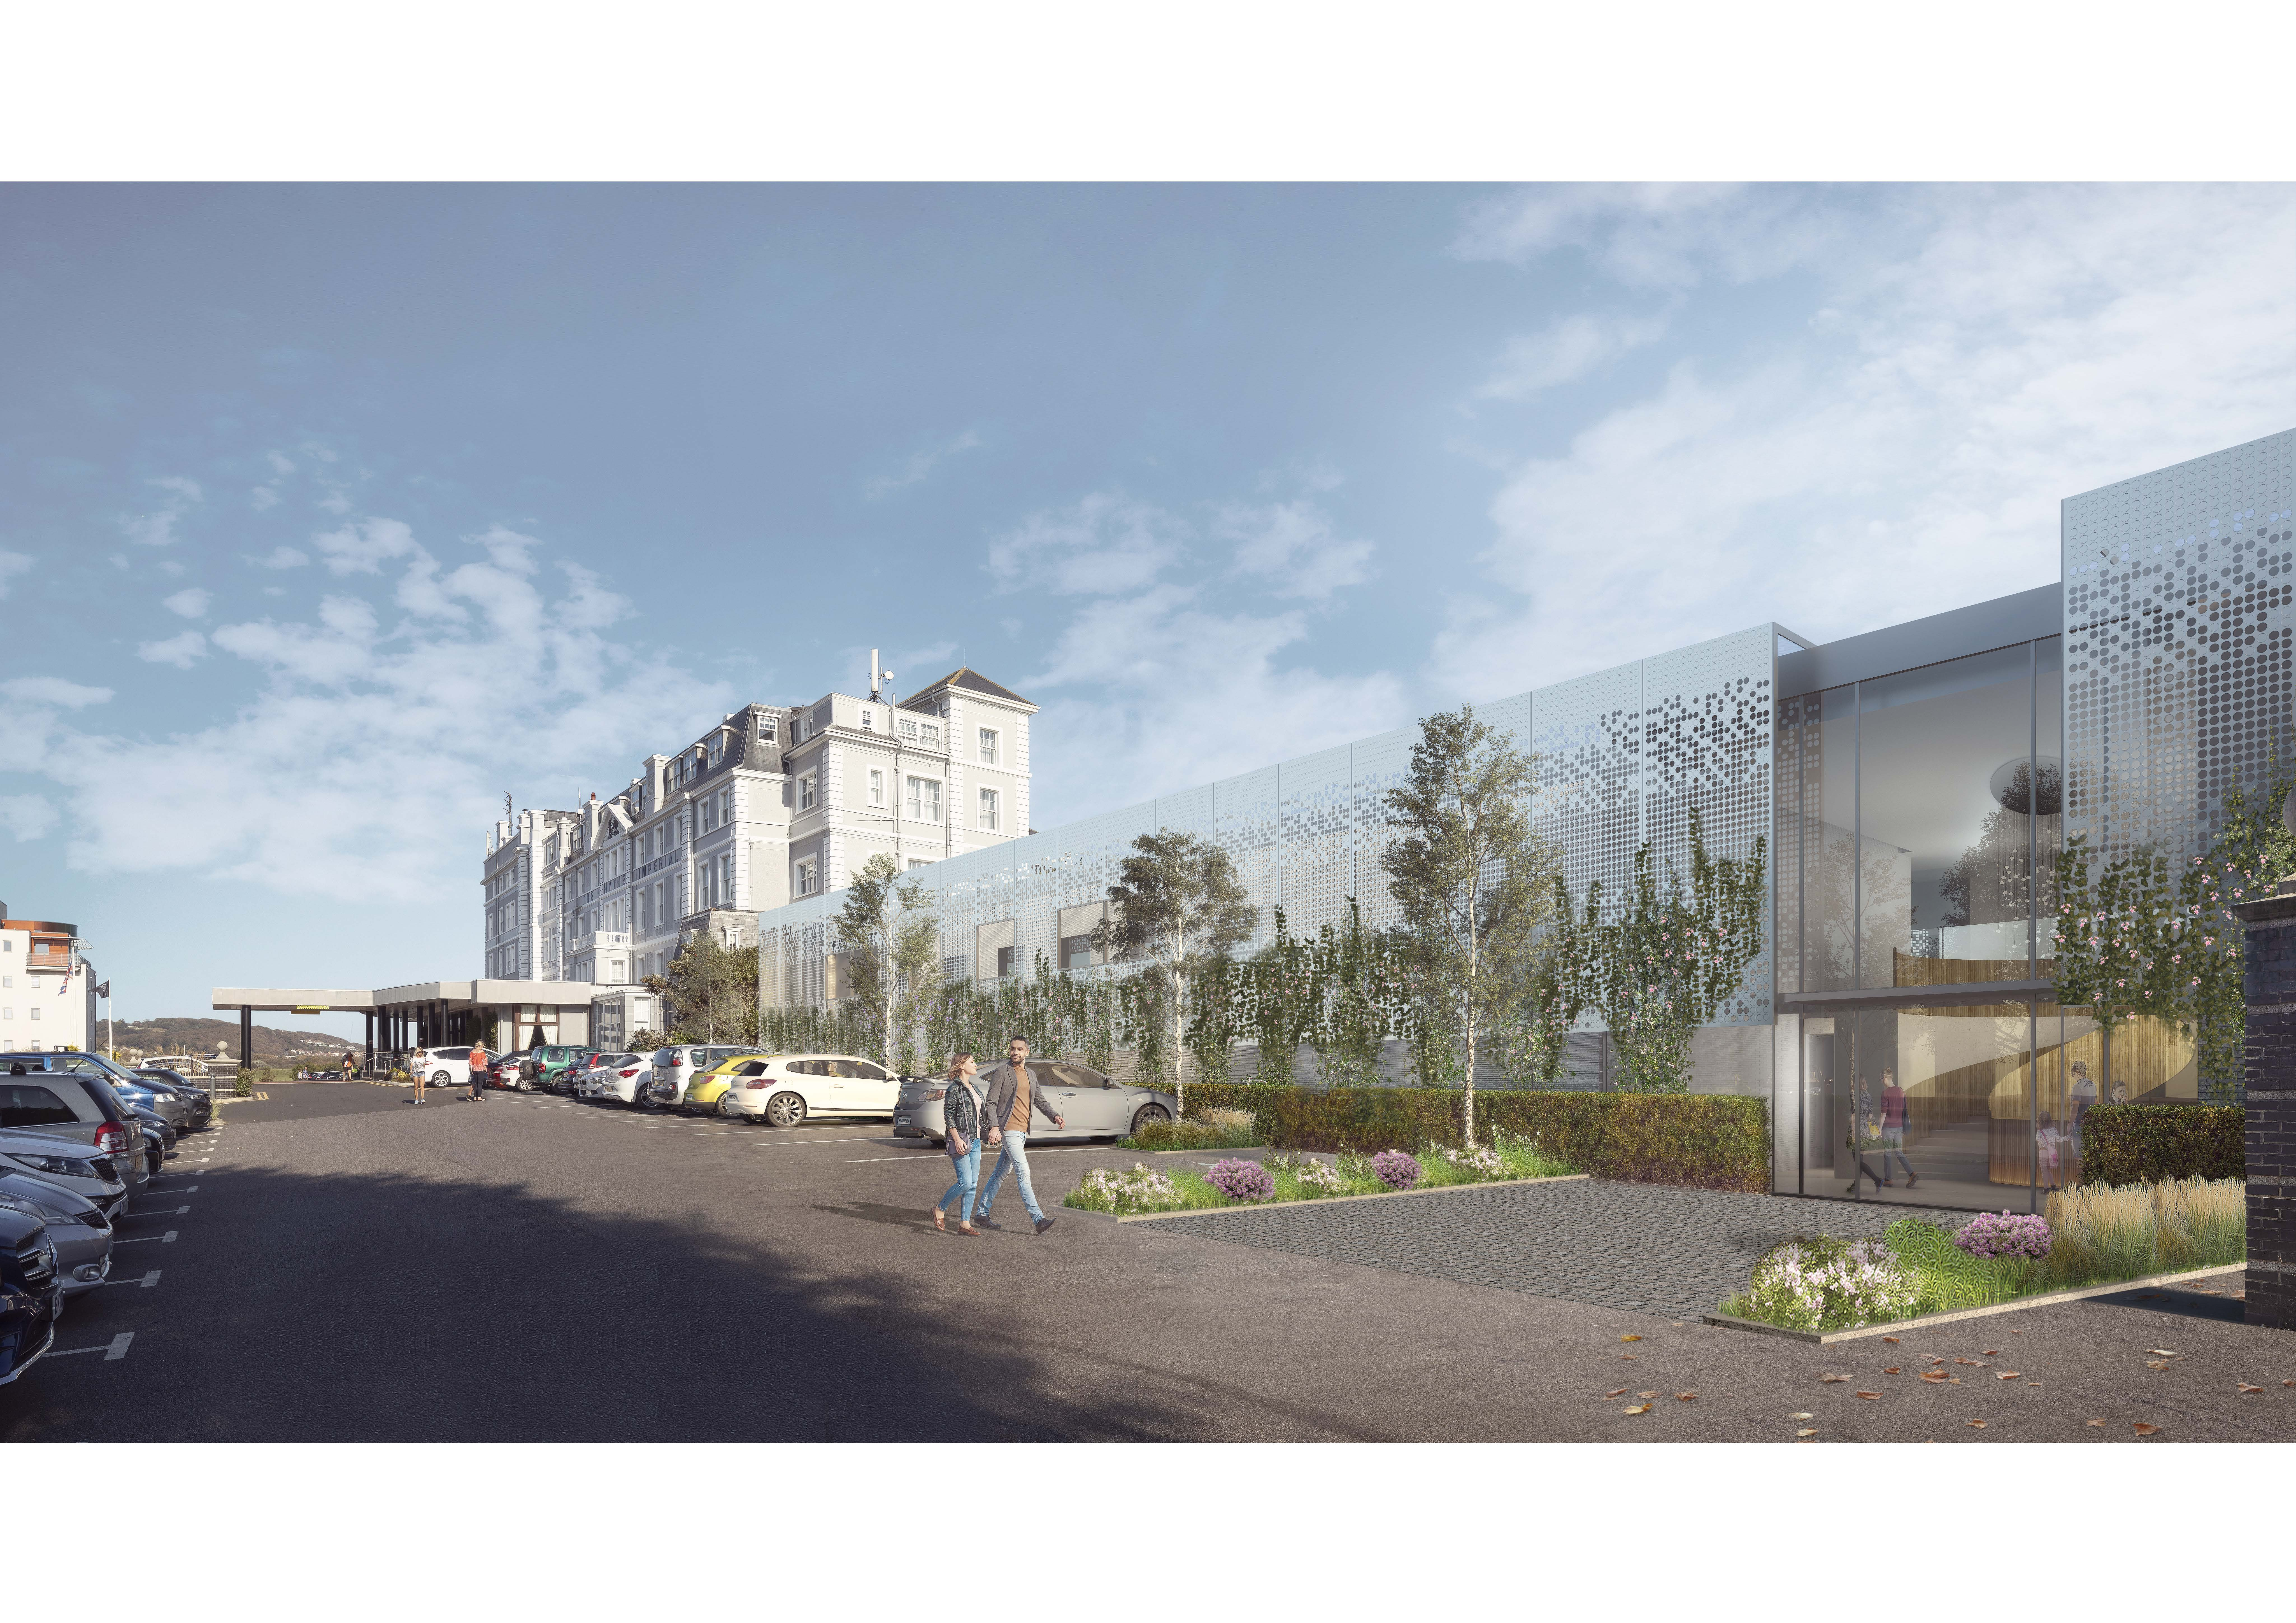 GSE Group receives Planning Consent for The Hythe Imperial Hotel